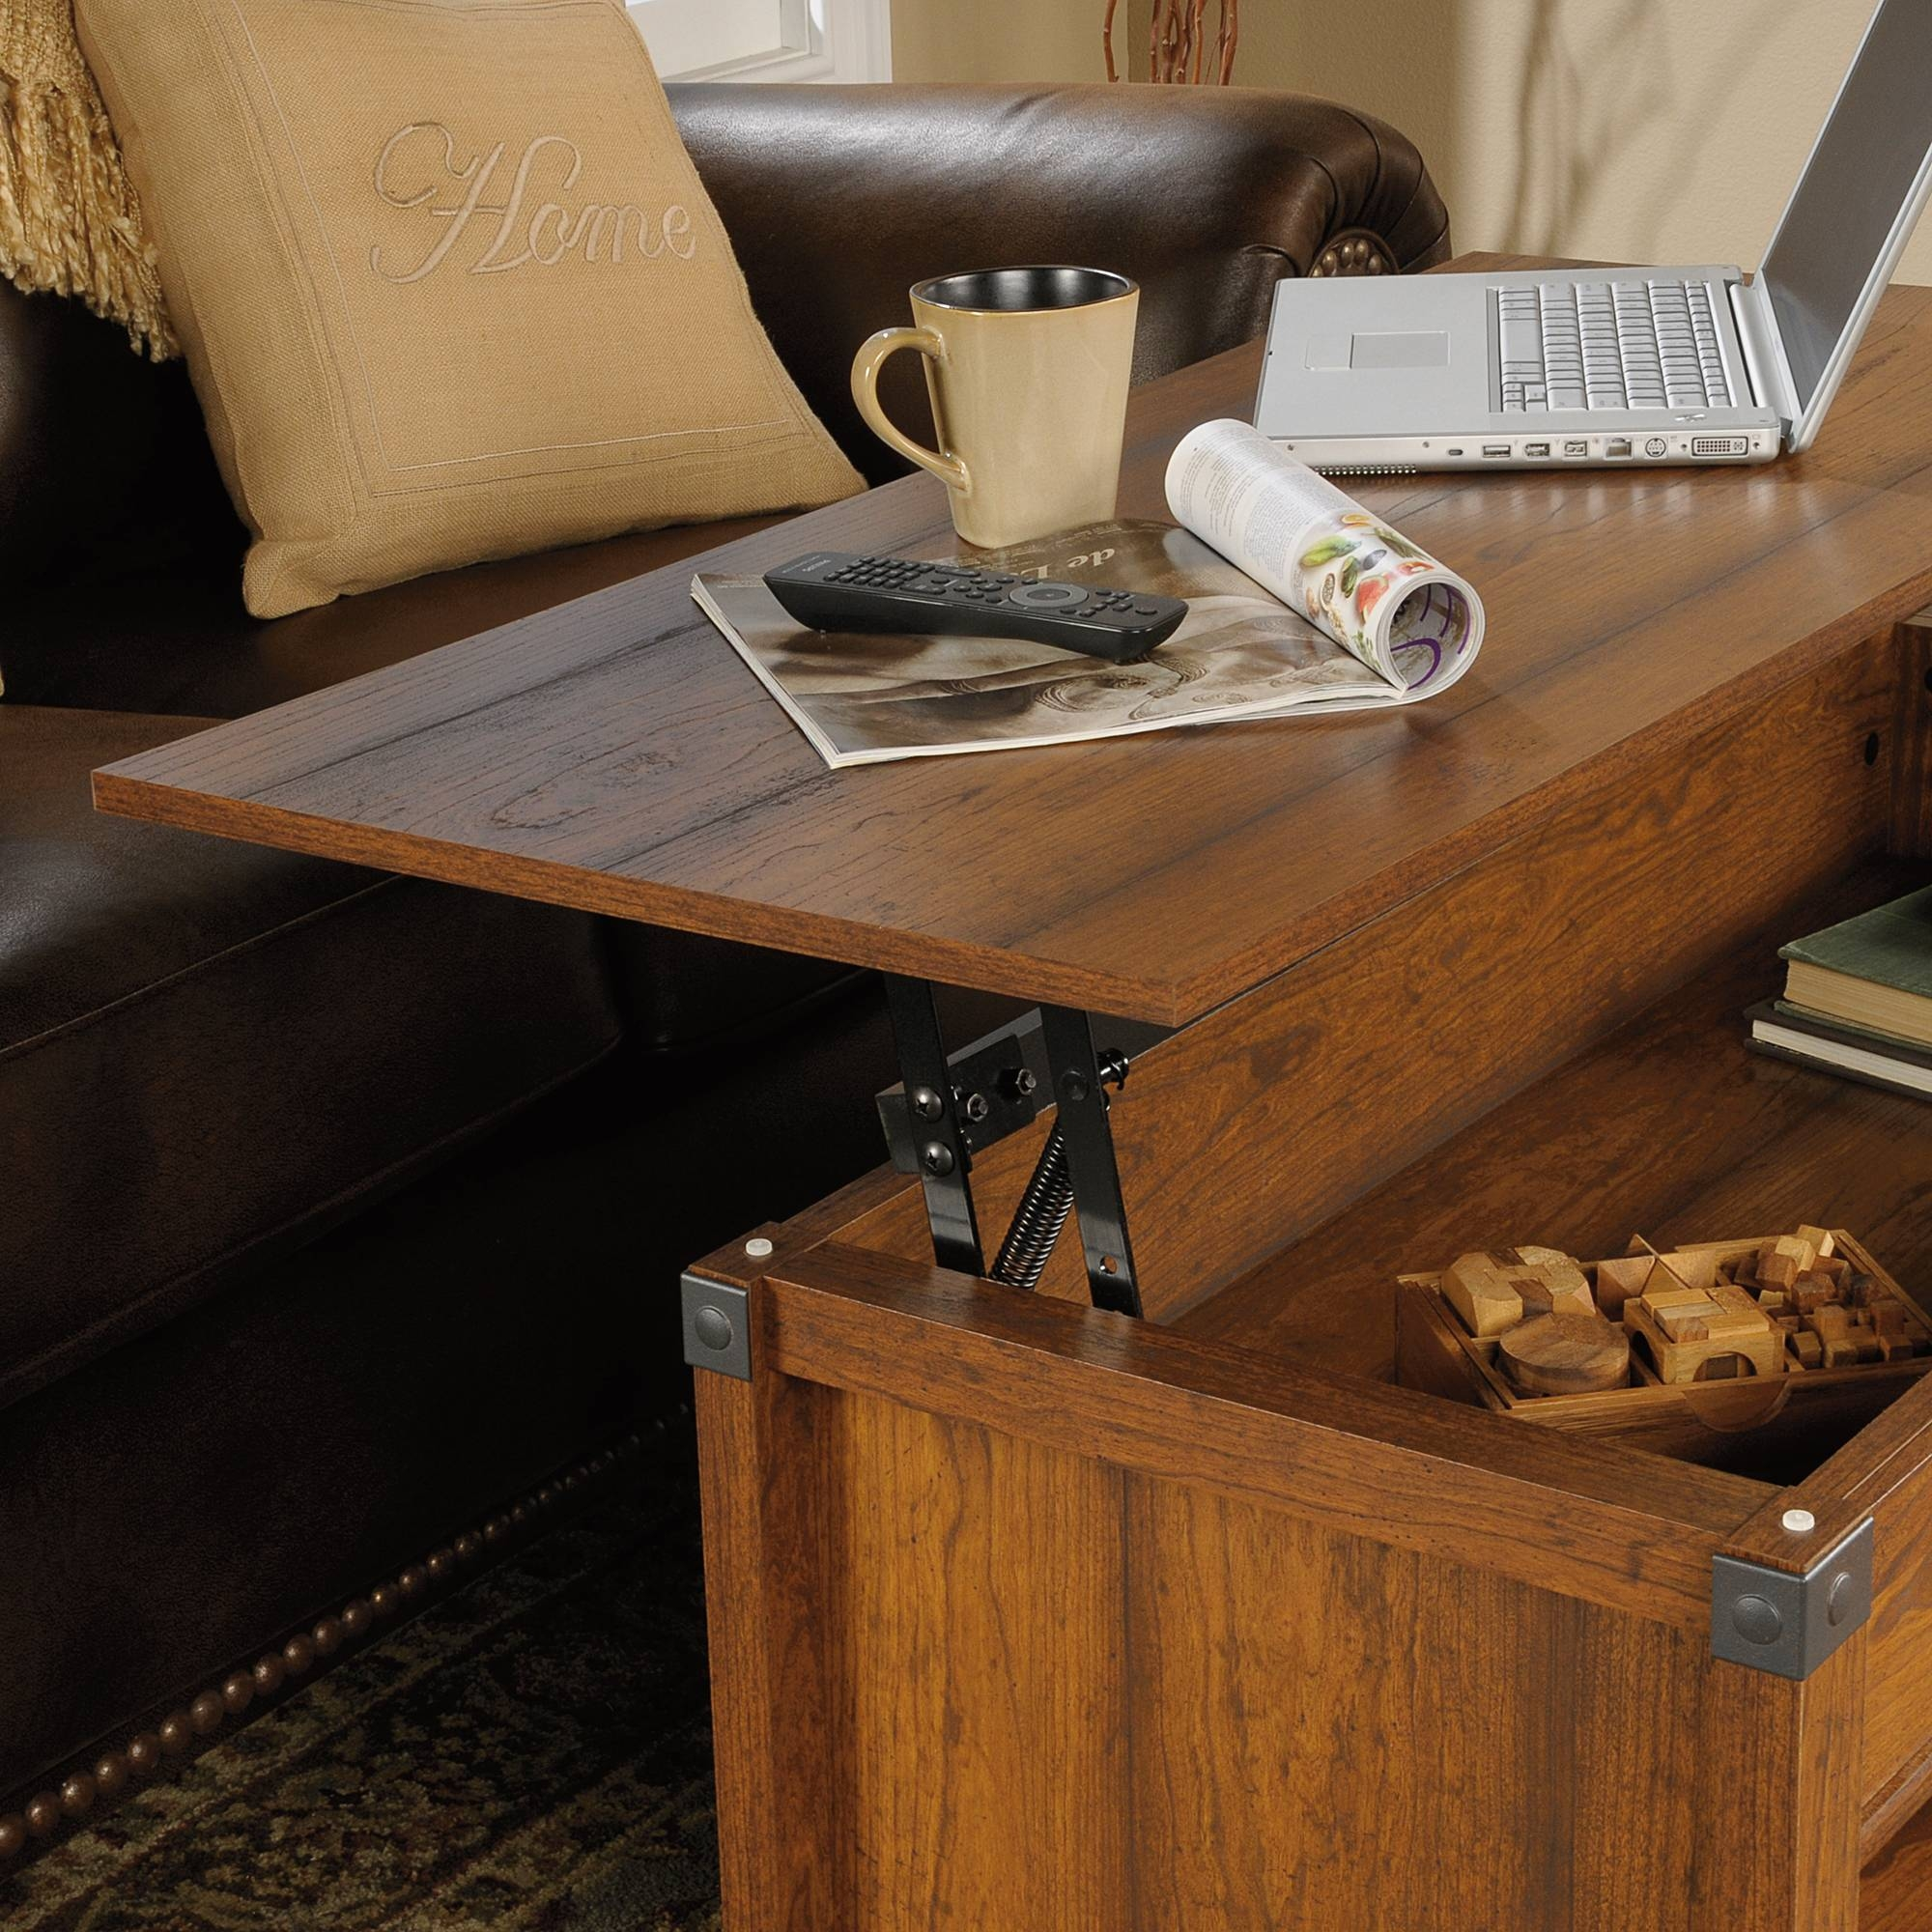 Carson Forge | Lift Top Coffee Table | 414444 | Sauder Within Lift Top Coffee Tables With Storage (View 8 of 30)